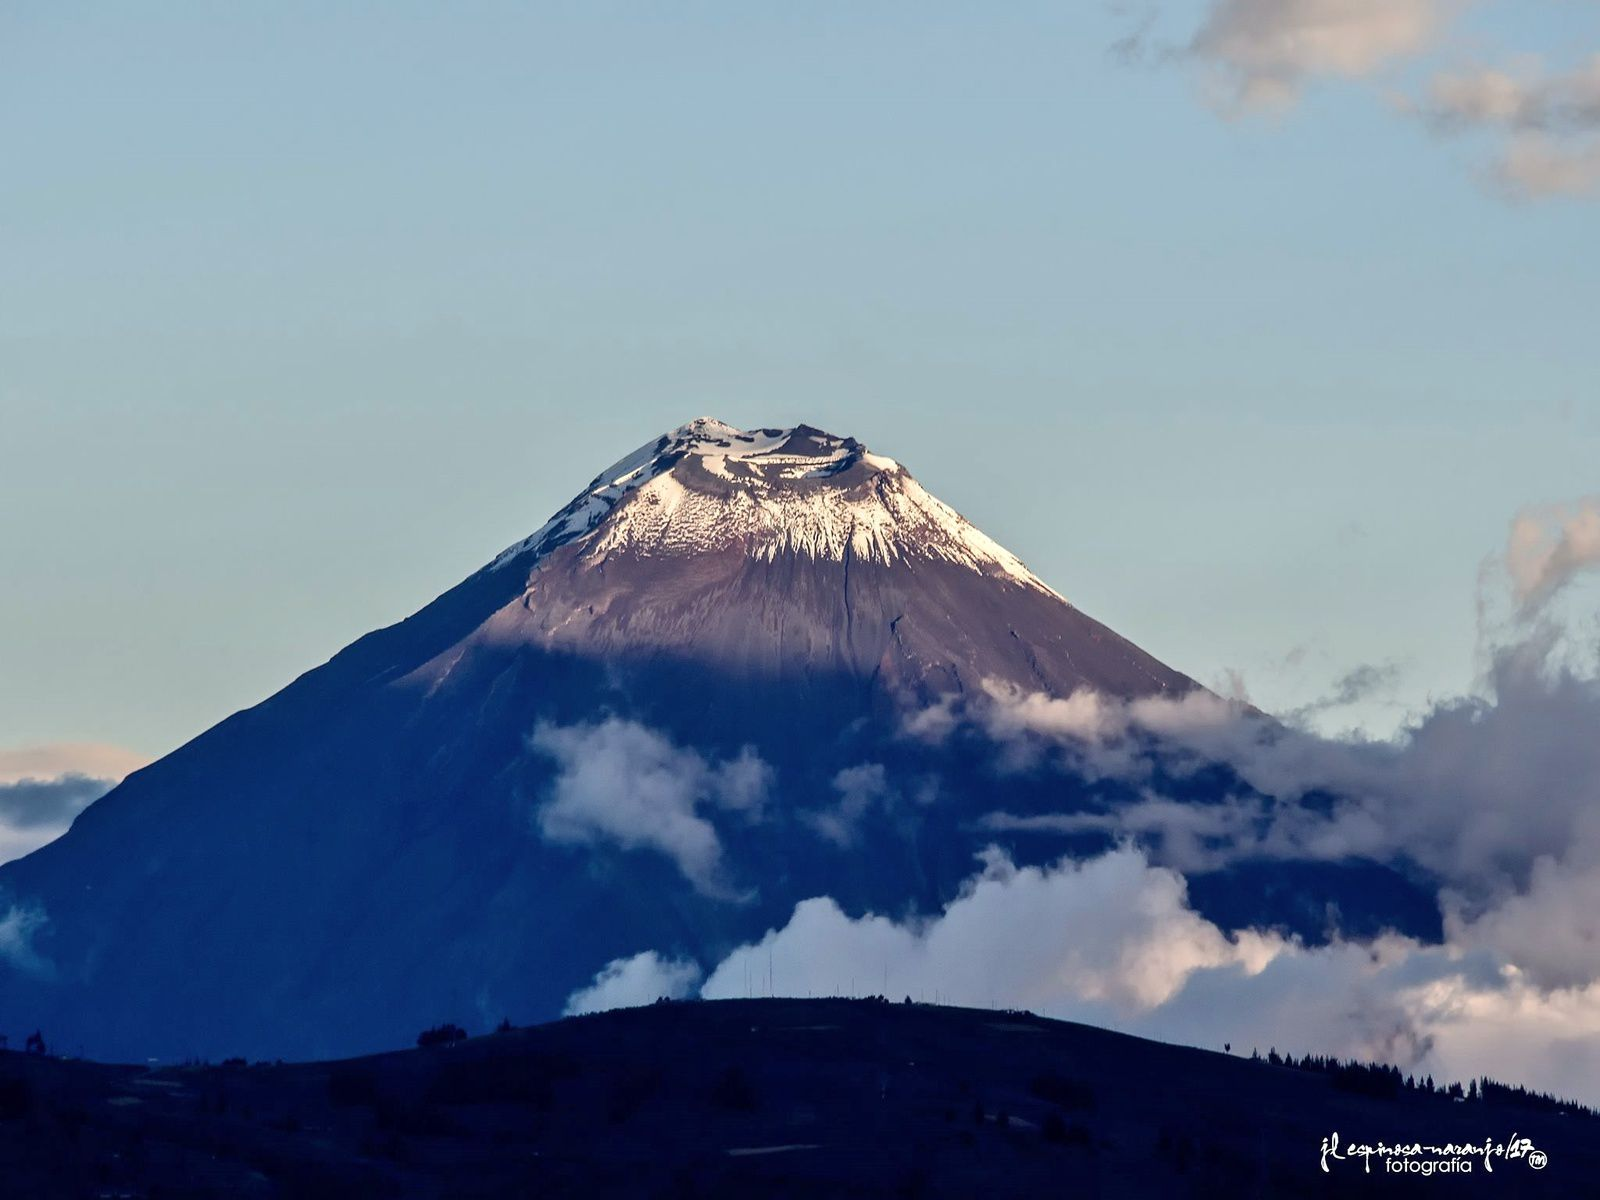 The Tungurahua on 14.11.2017 by José Luis Espinosa-Naranjo, always on the lookout for beautiful views.